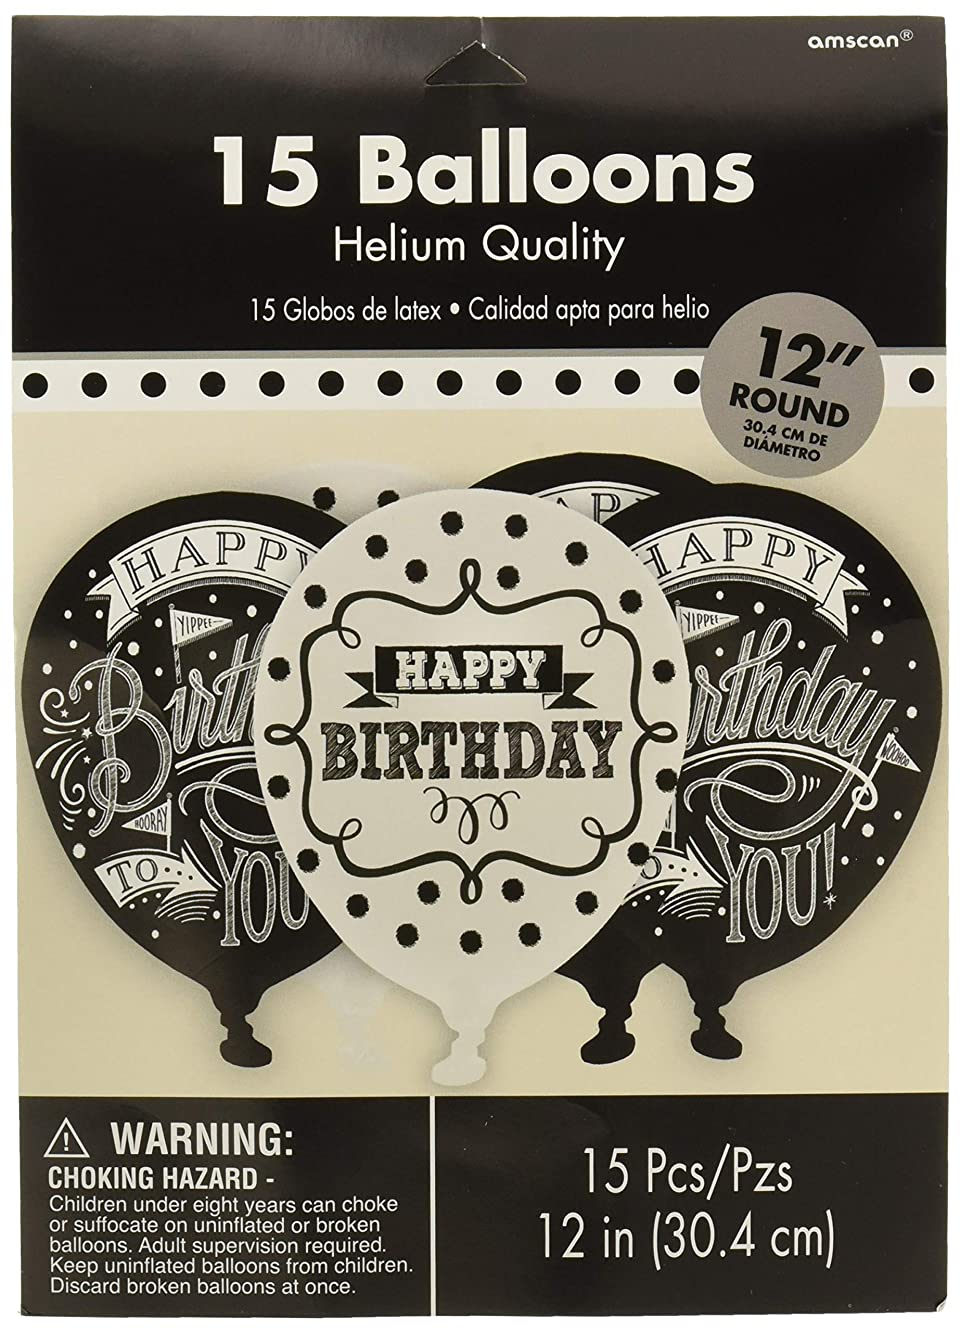 Amscan Chalkboard Birthday Printed Latex Balloons - Assorted Styles Party Supplies, Black and White, 12